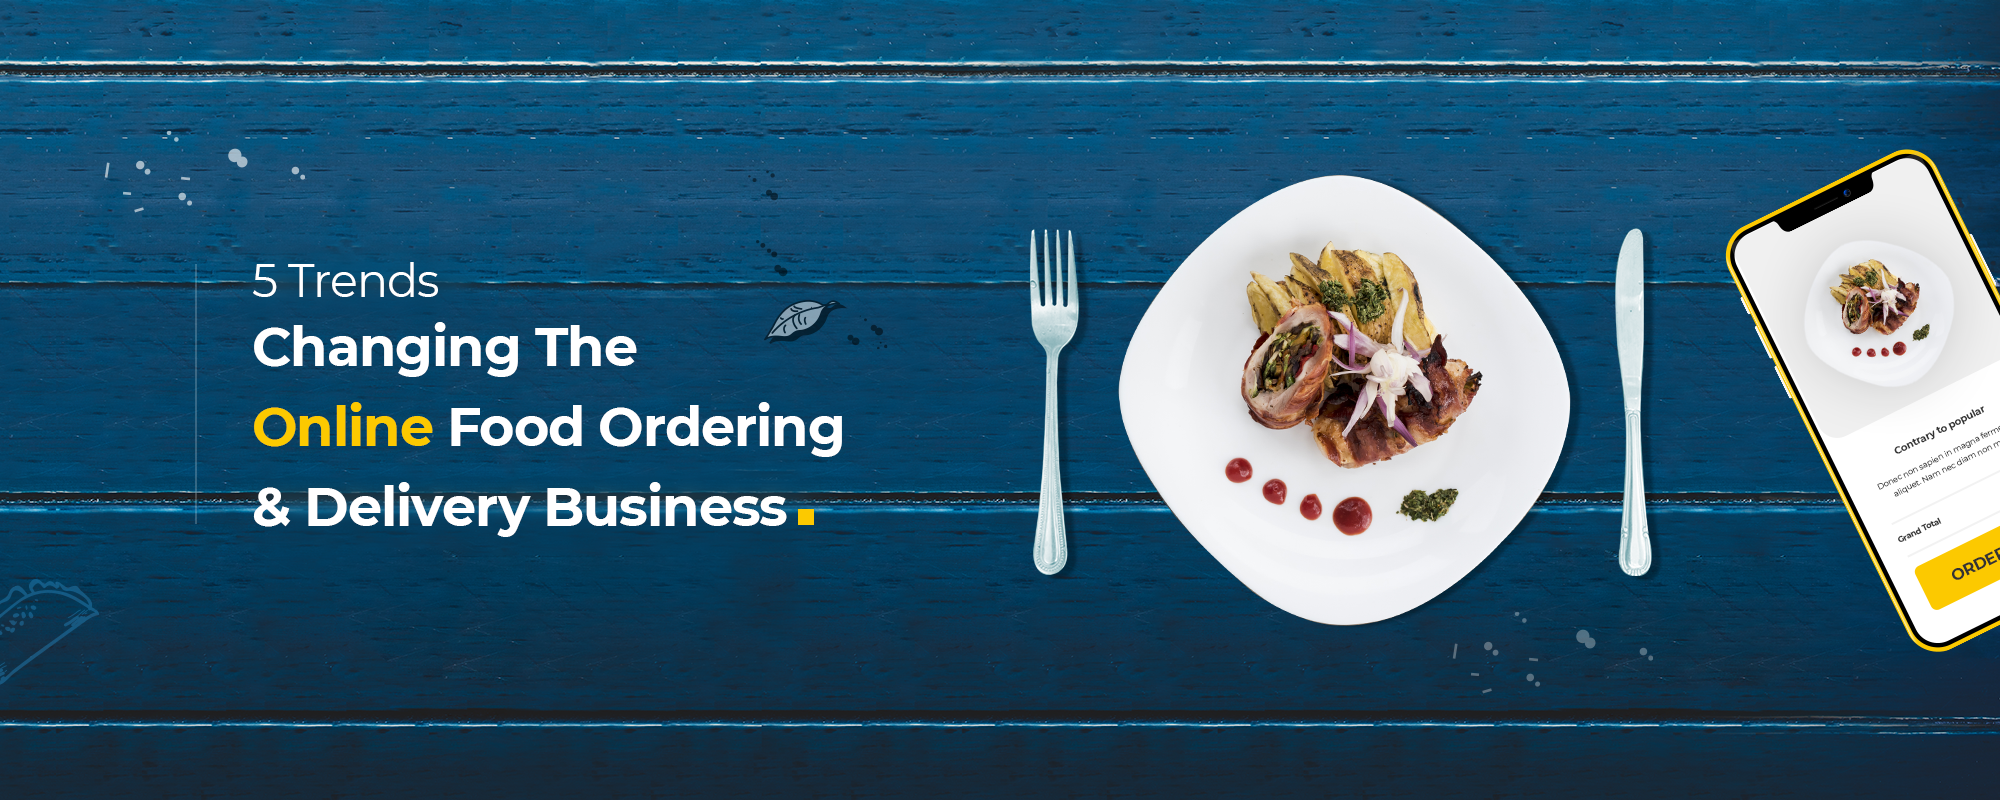 5 Trends Driving Changes in Online Food Ordering and Delivery Business